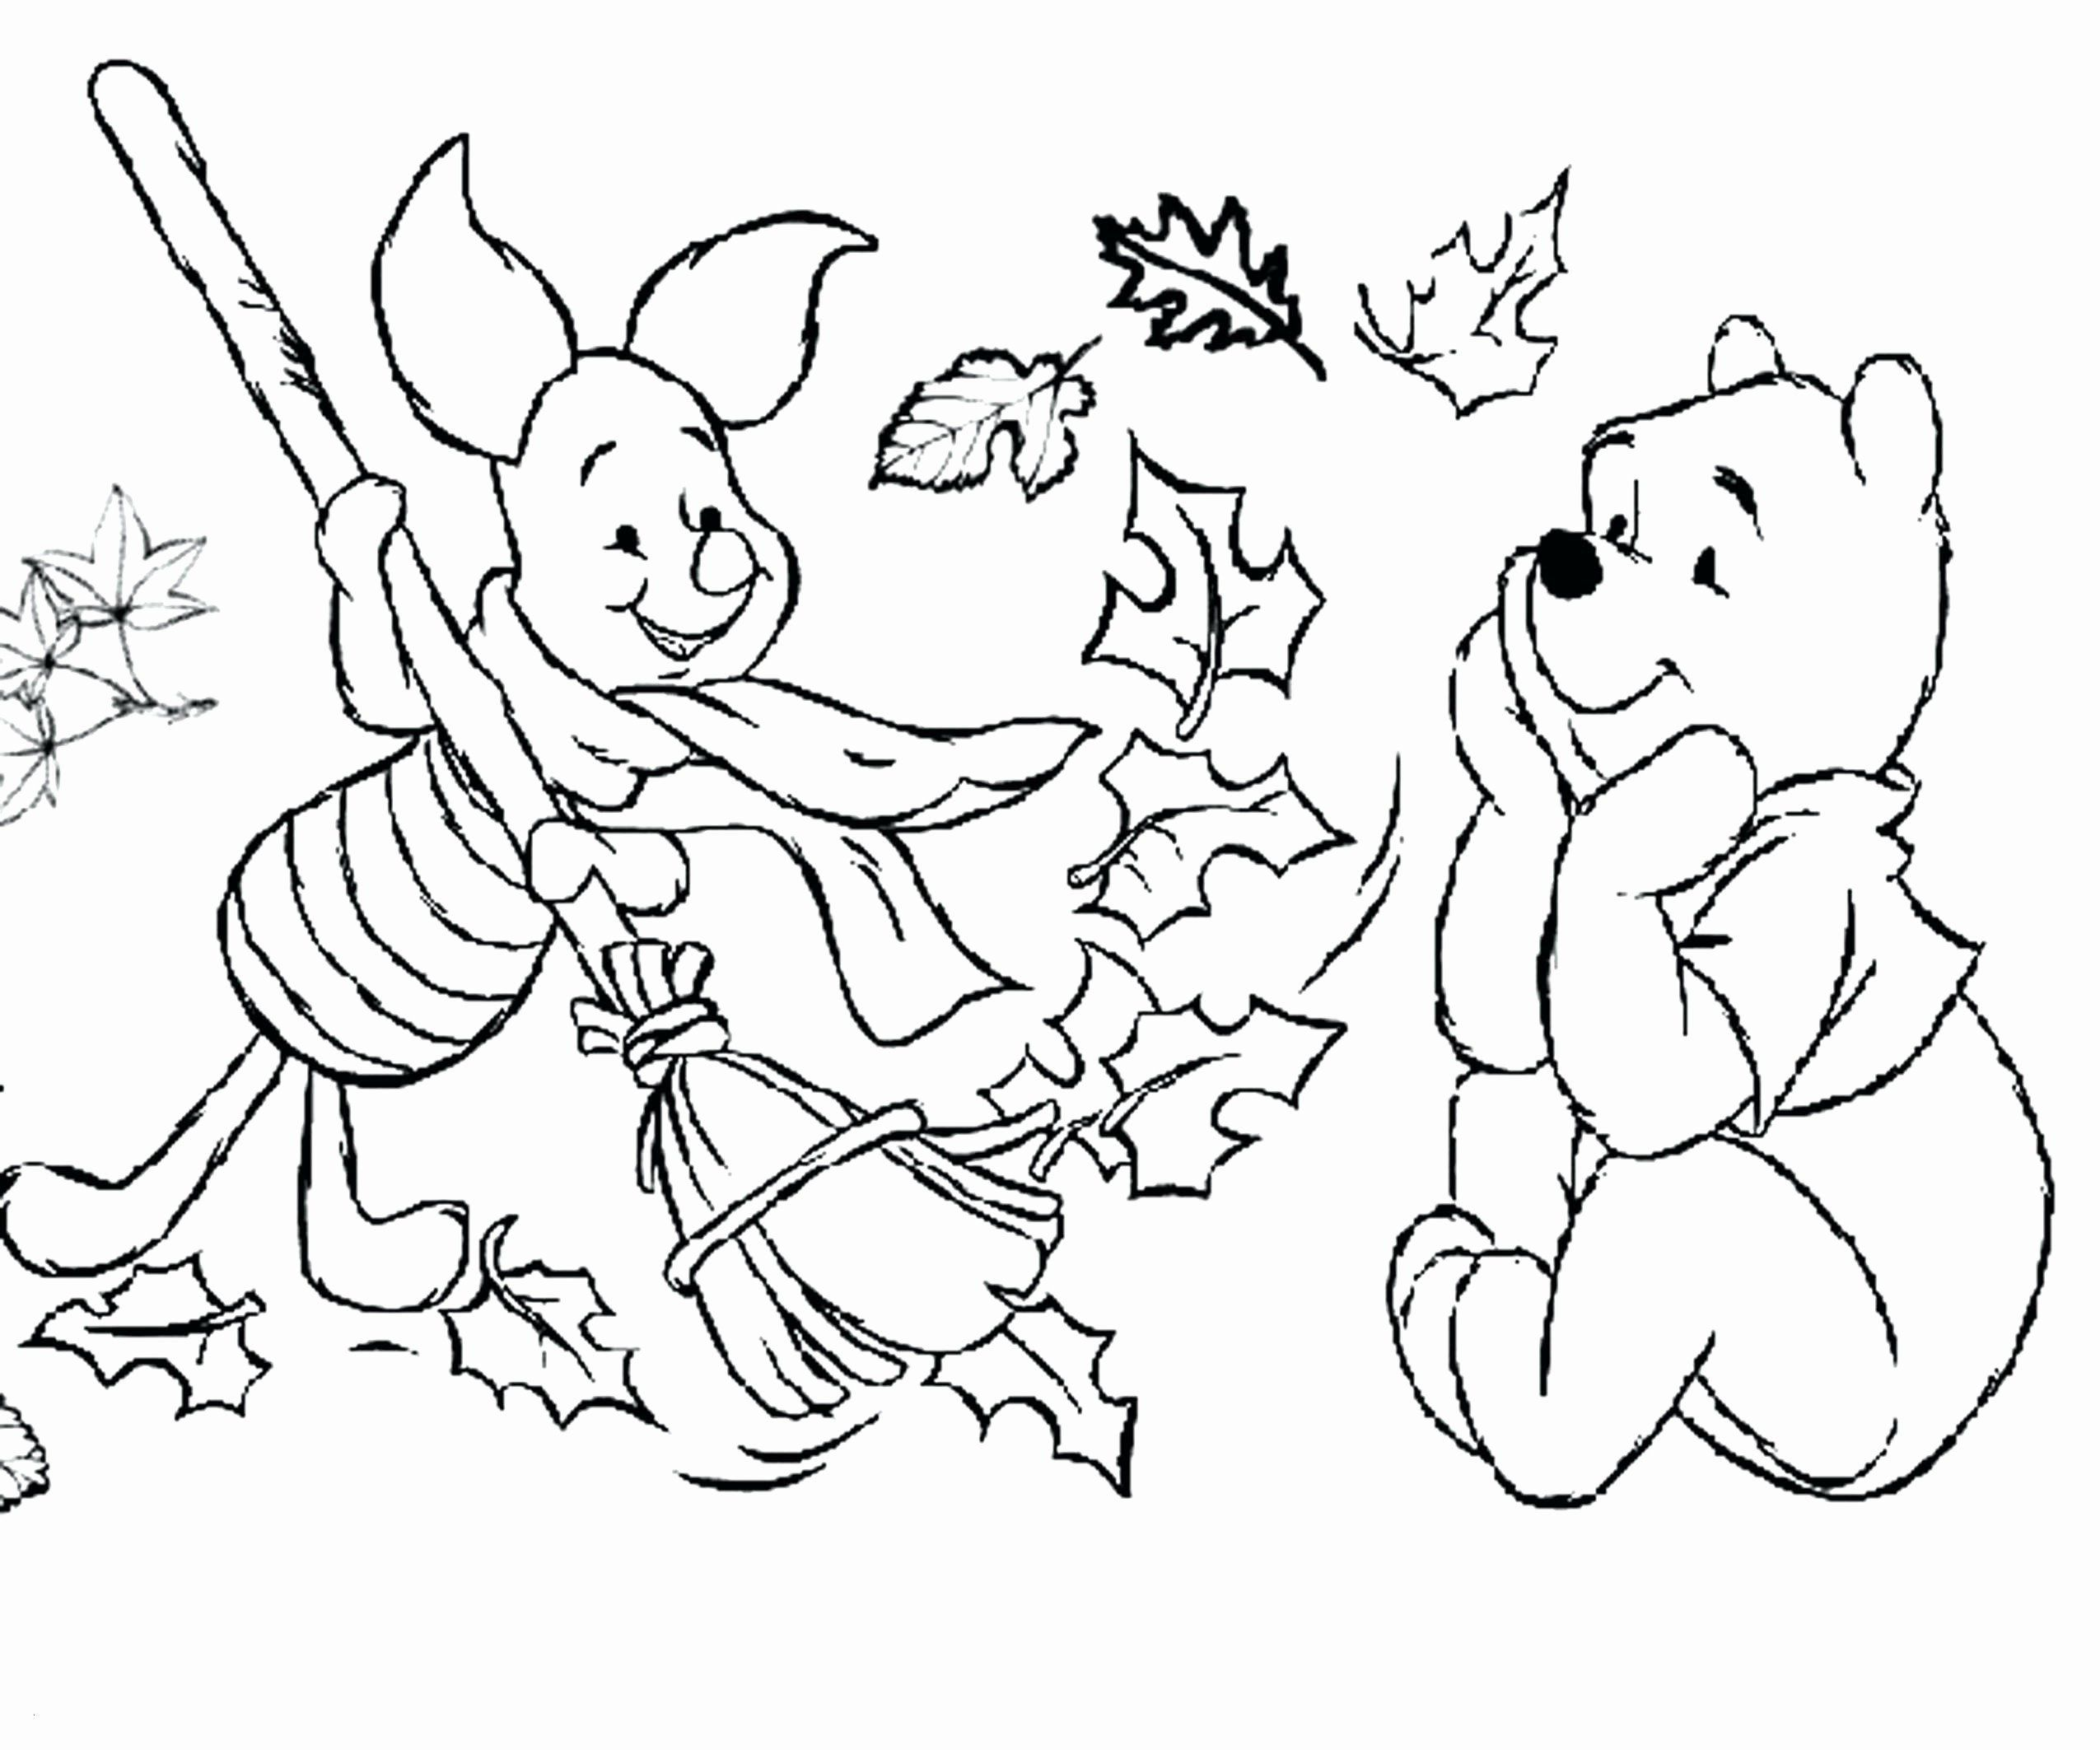 Elf On The Shelf Coloring Pages Unique Jvzooreview Part 86 Animal Coloring Pages Bear Coloring Pages Pokemon Coloring Pages